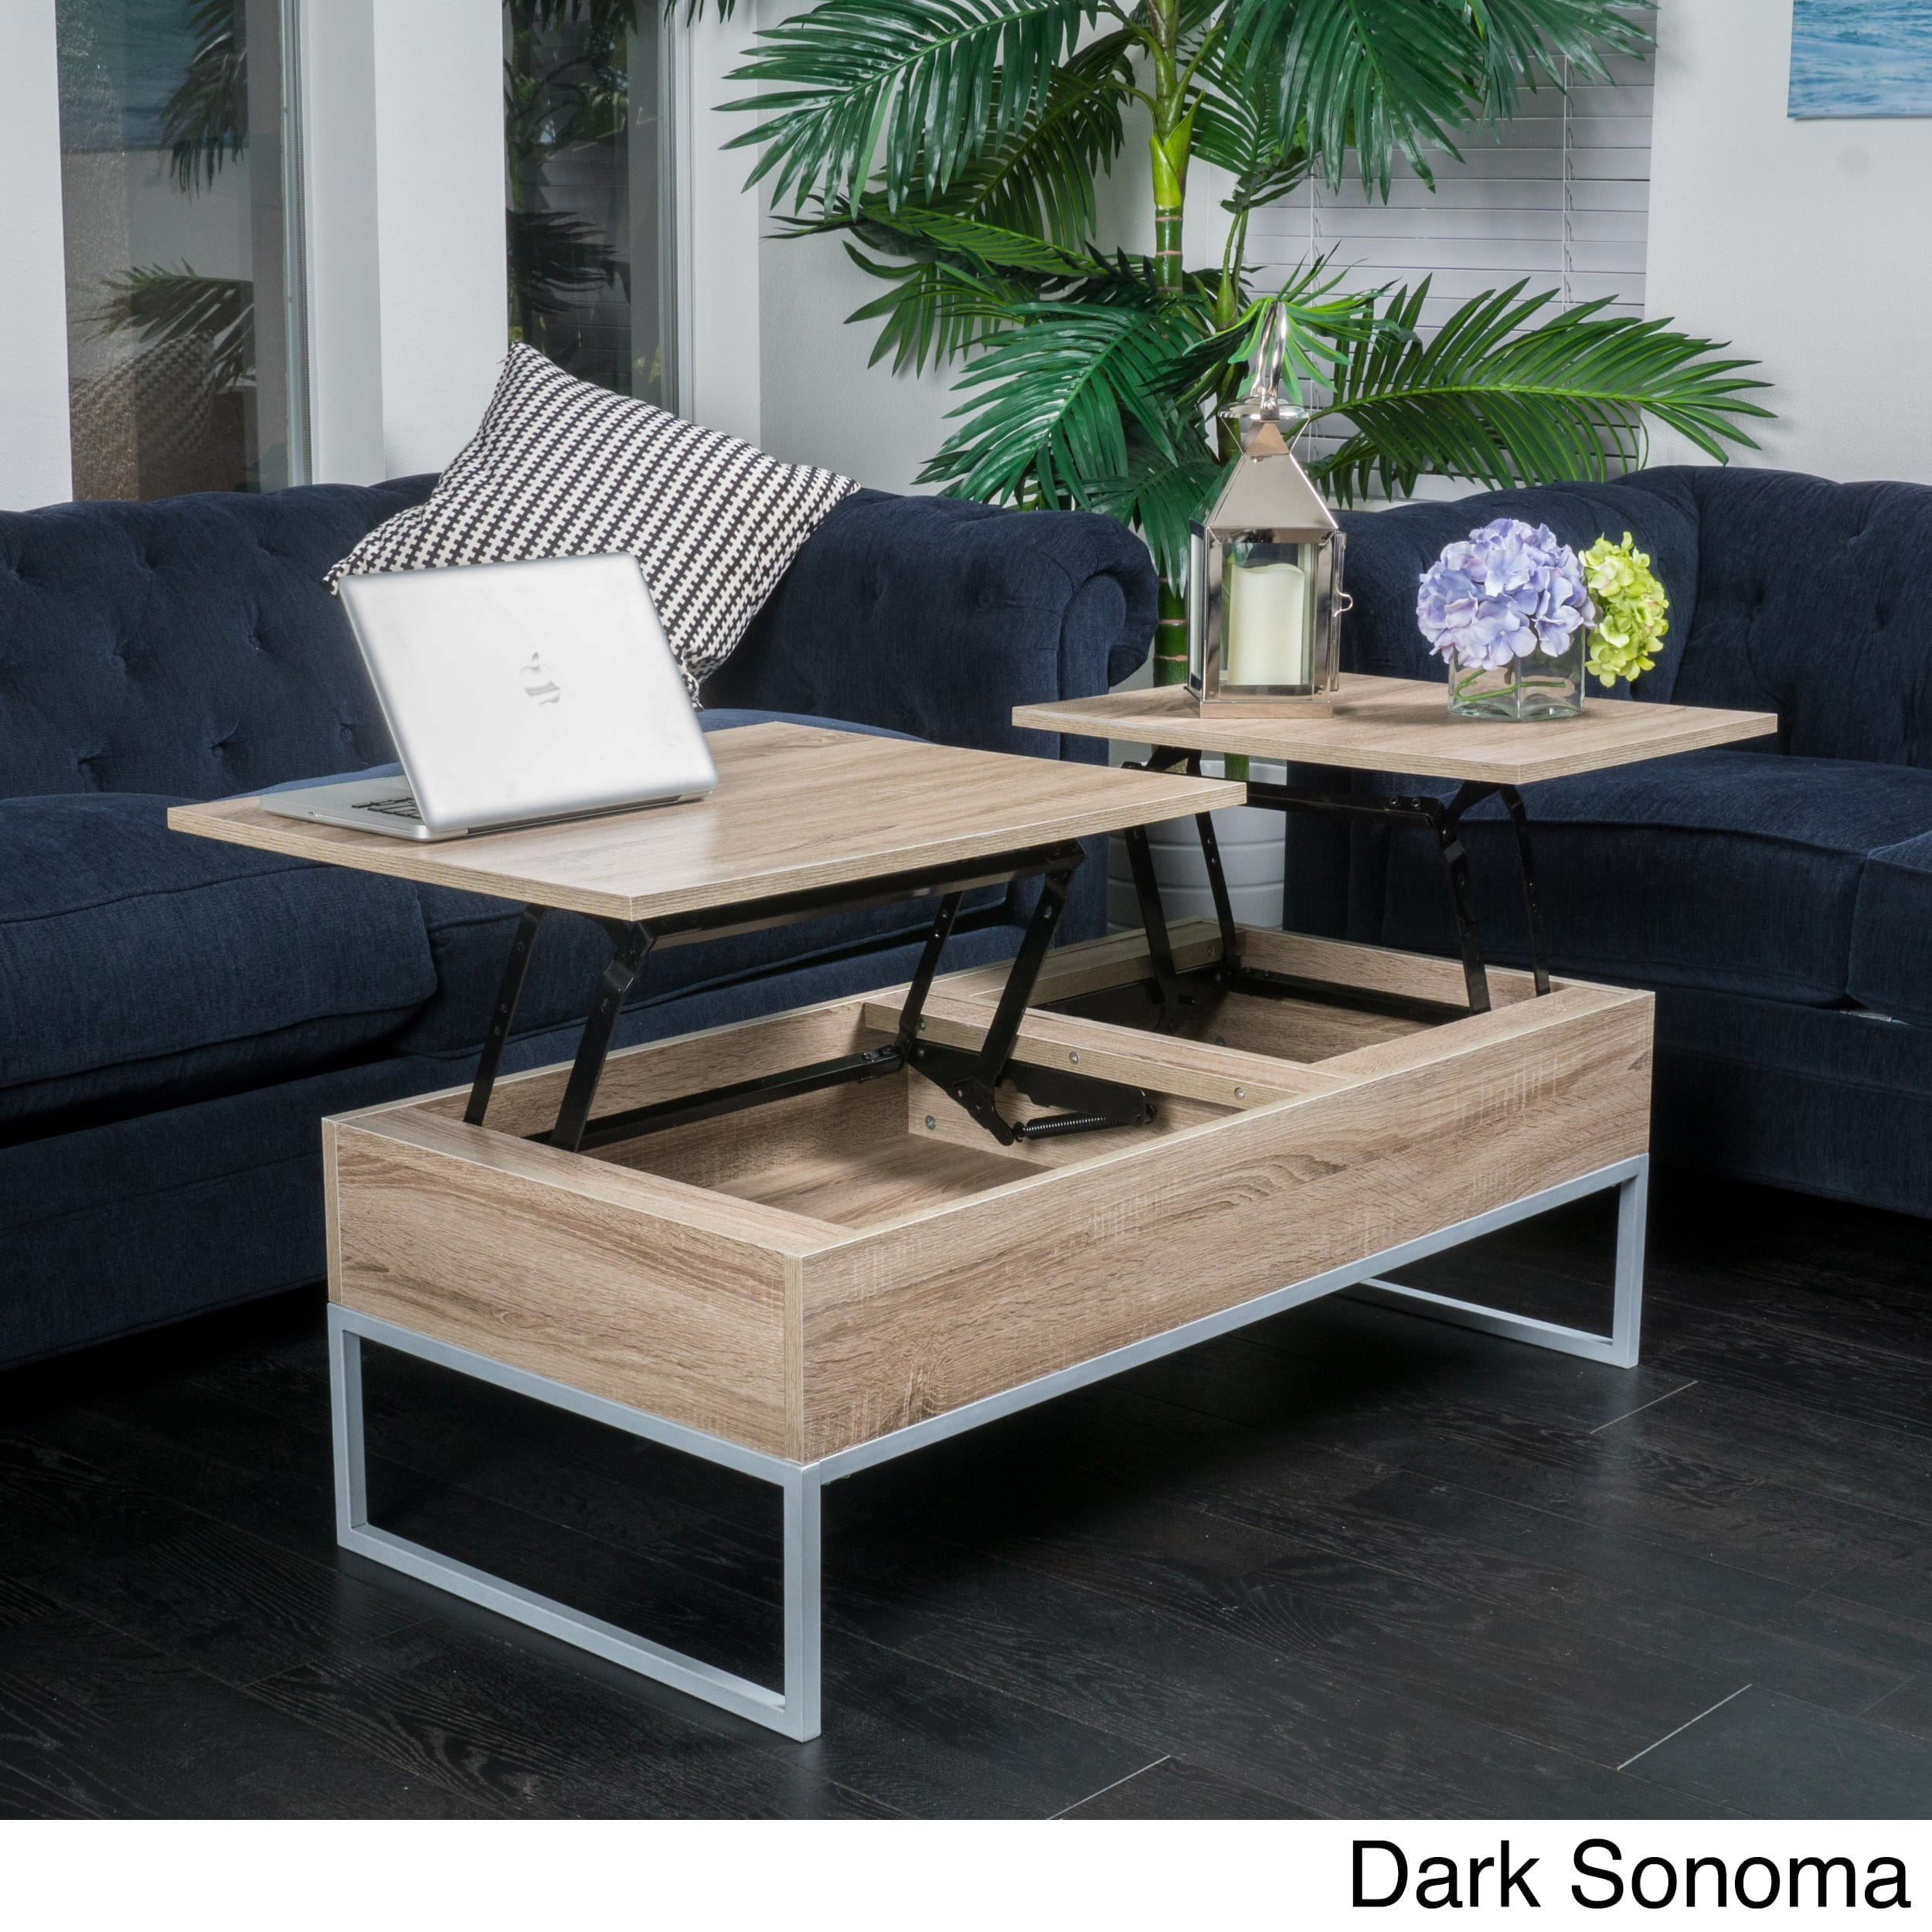 Lift Functional Coffee Table in Dark Sonoma Finish